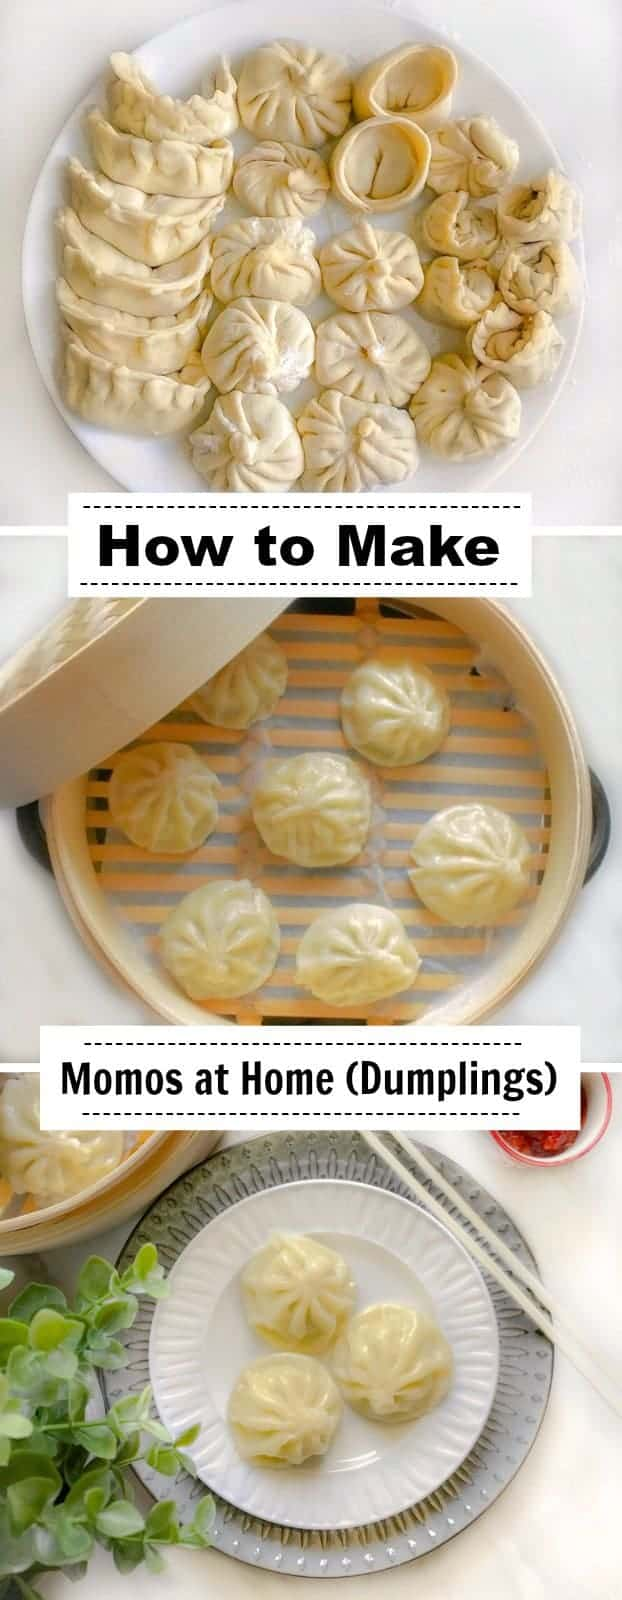 How to Make Momos at Home: #momos #dumplings #chinese